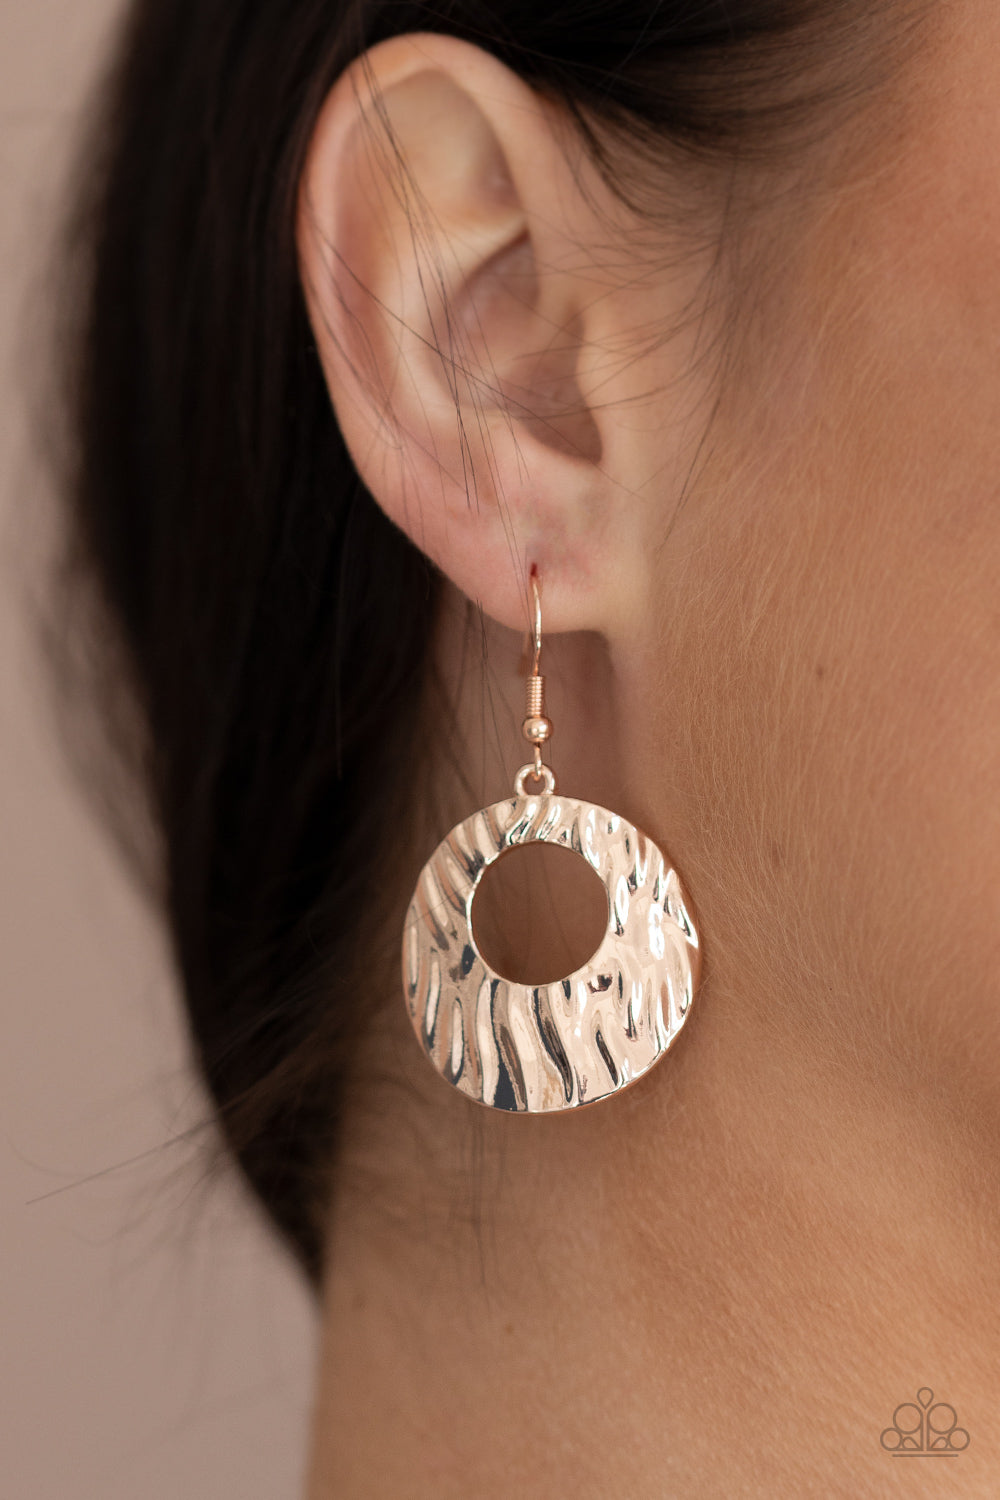 Warped Perceptions - Rose Gold Earrings - Paparazzi Accessories